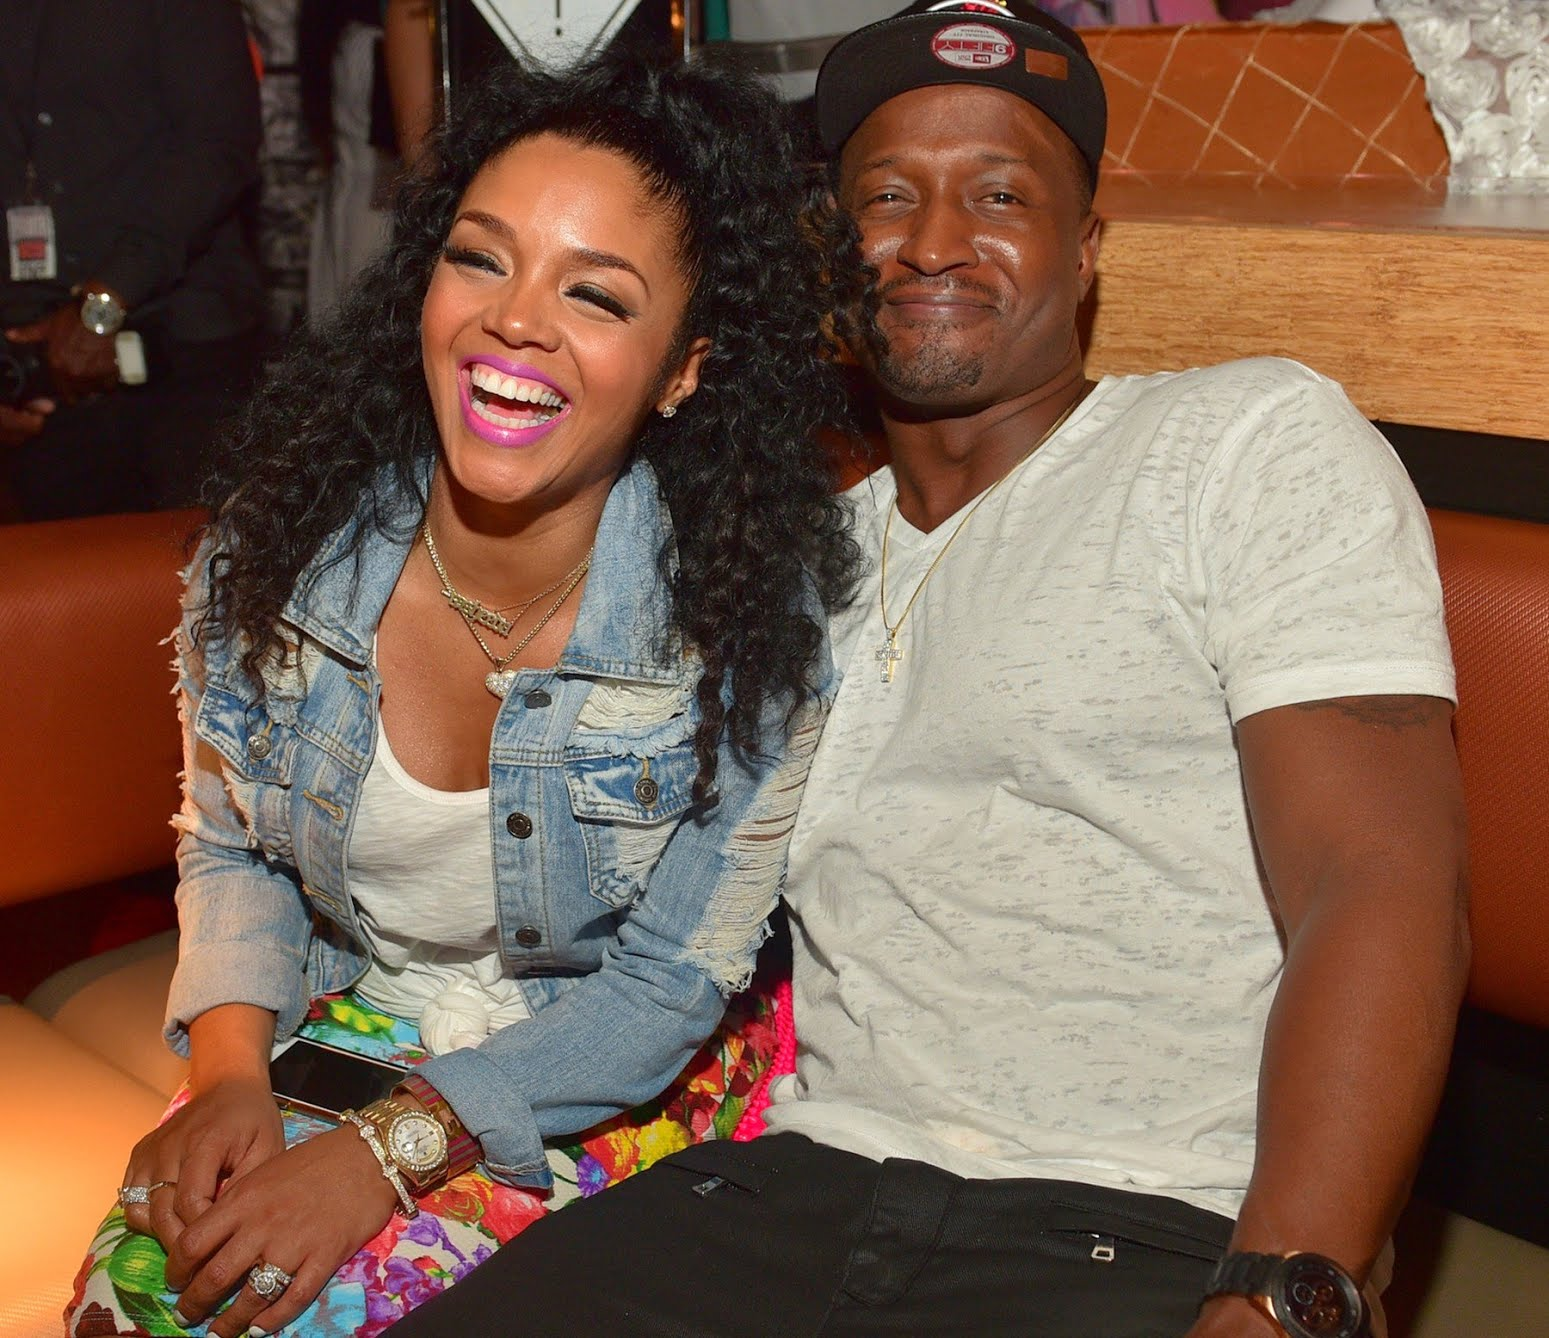 Rasheeda Frost And Kirk Look Amazing In This Video – Check Out The Power Couple